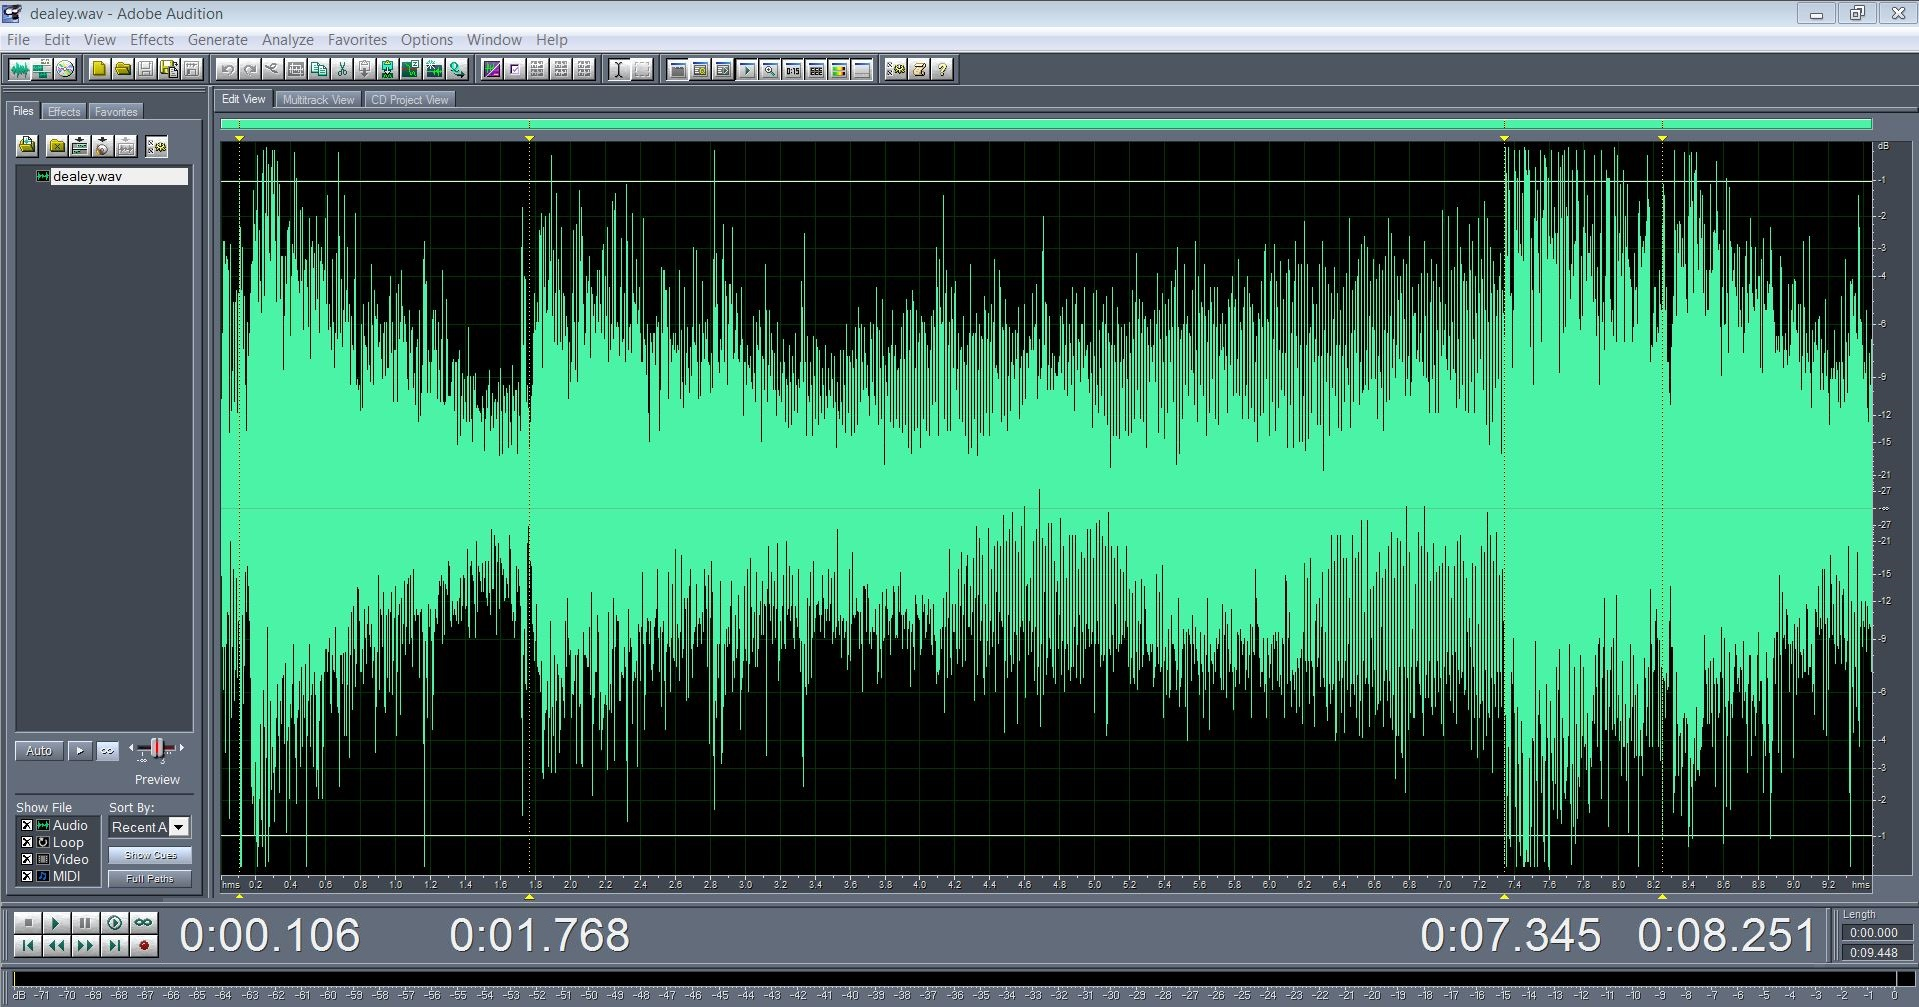 Adobe_Audition_waveform_of_sound_impulses_on_the_police_dictabelt_analyzed.jpg